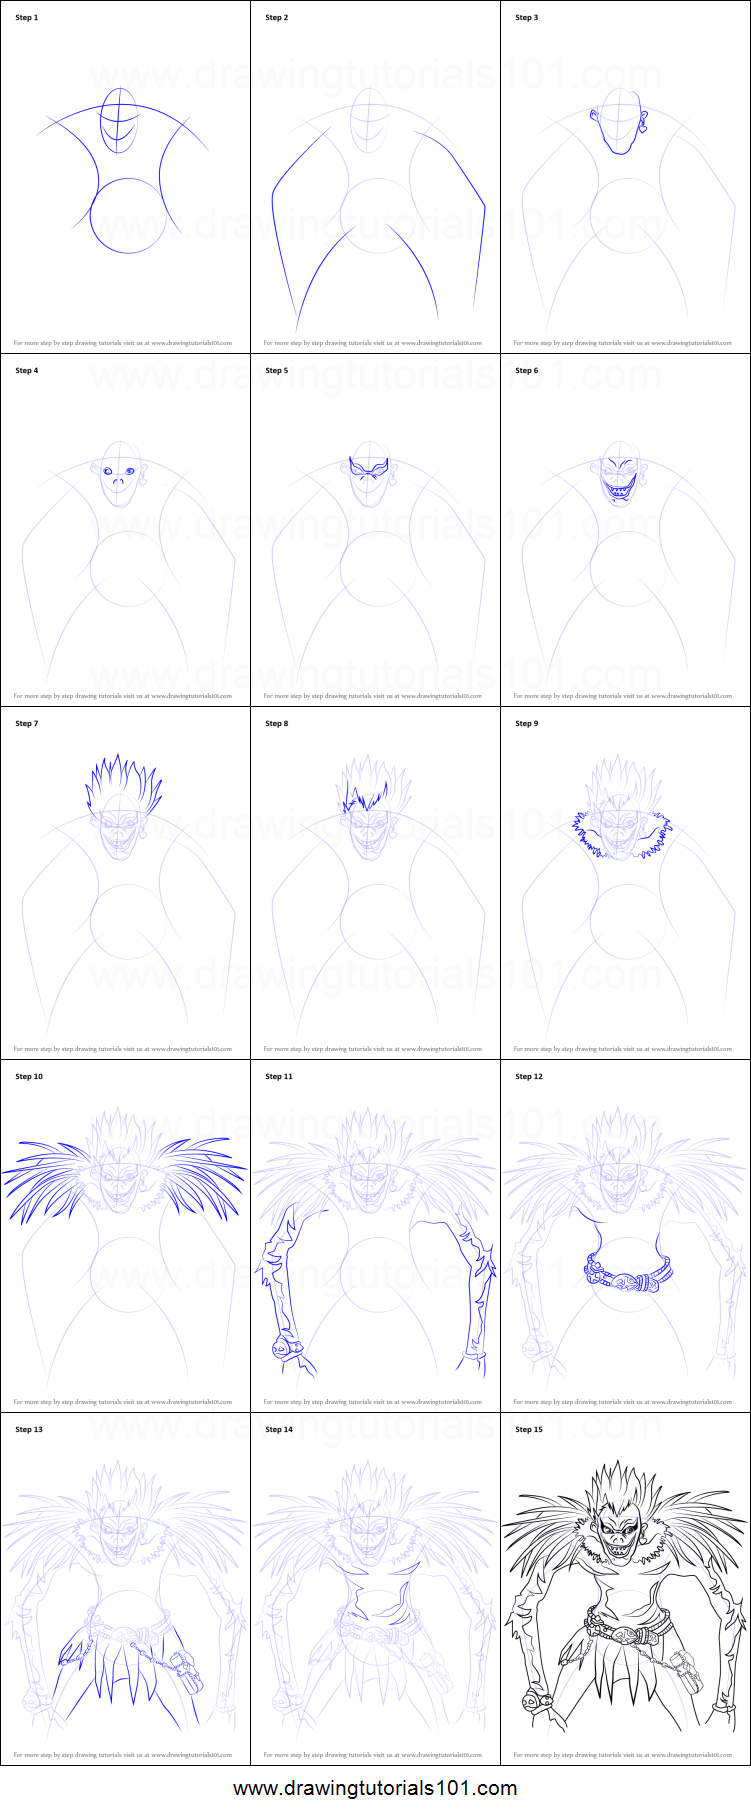 How To Draw Ryuk From Death Note Printable Step By Step